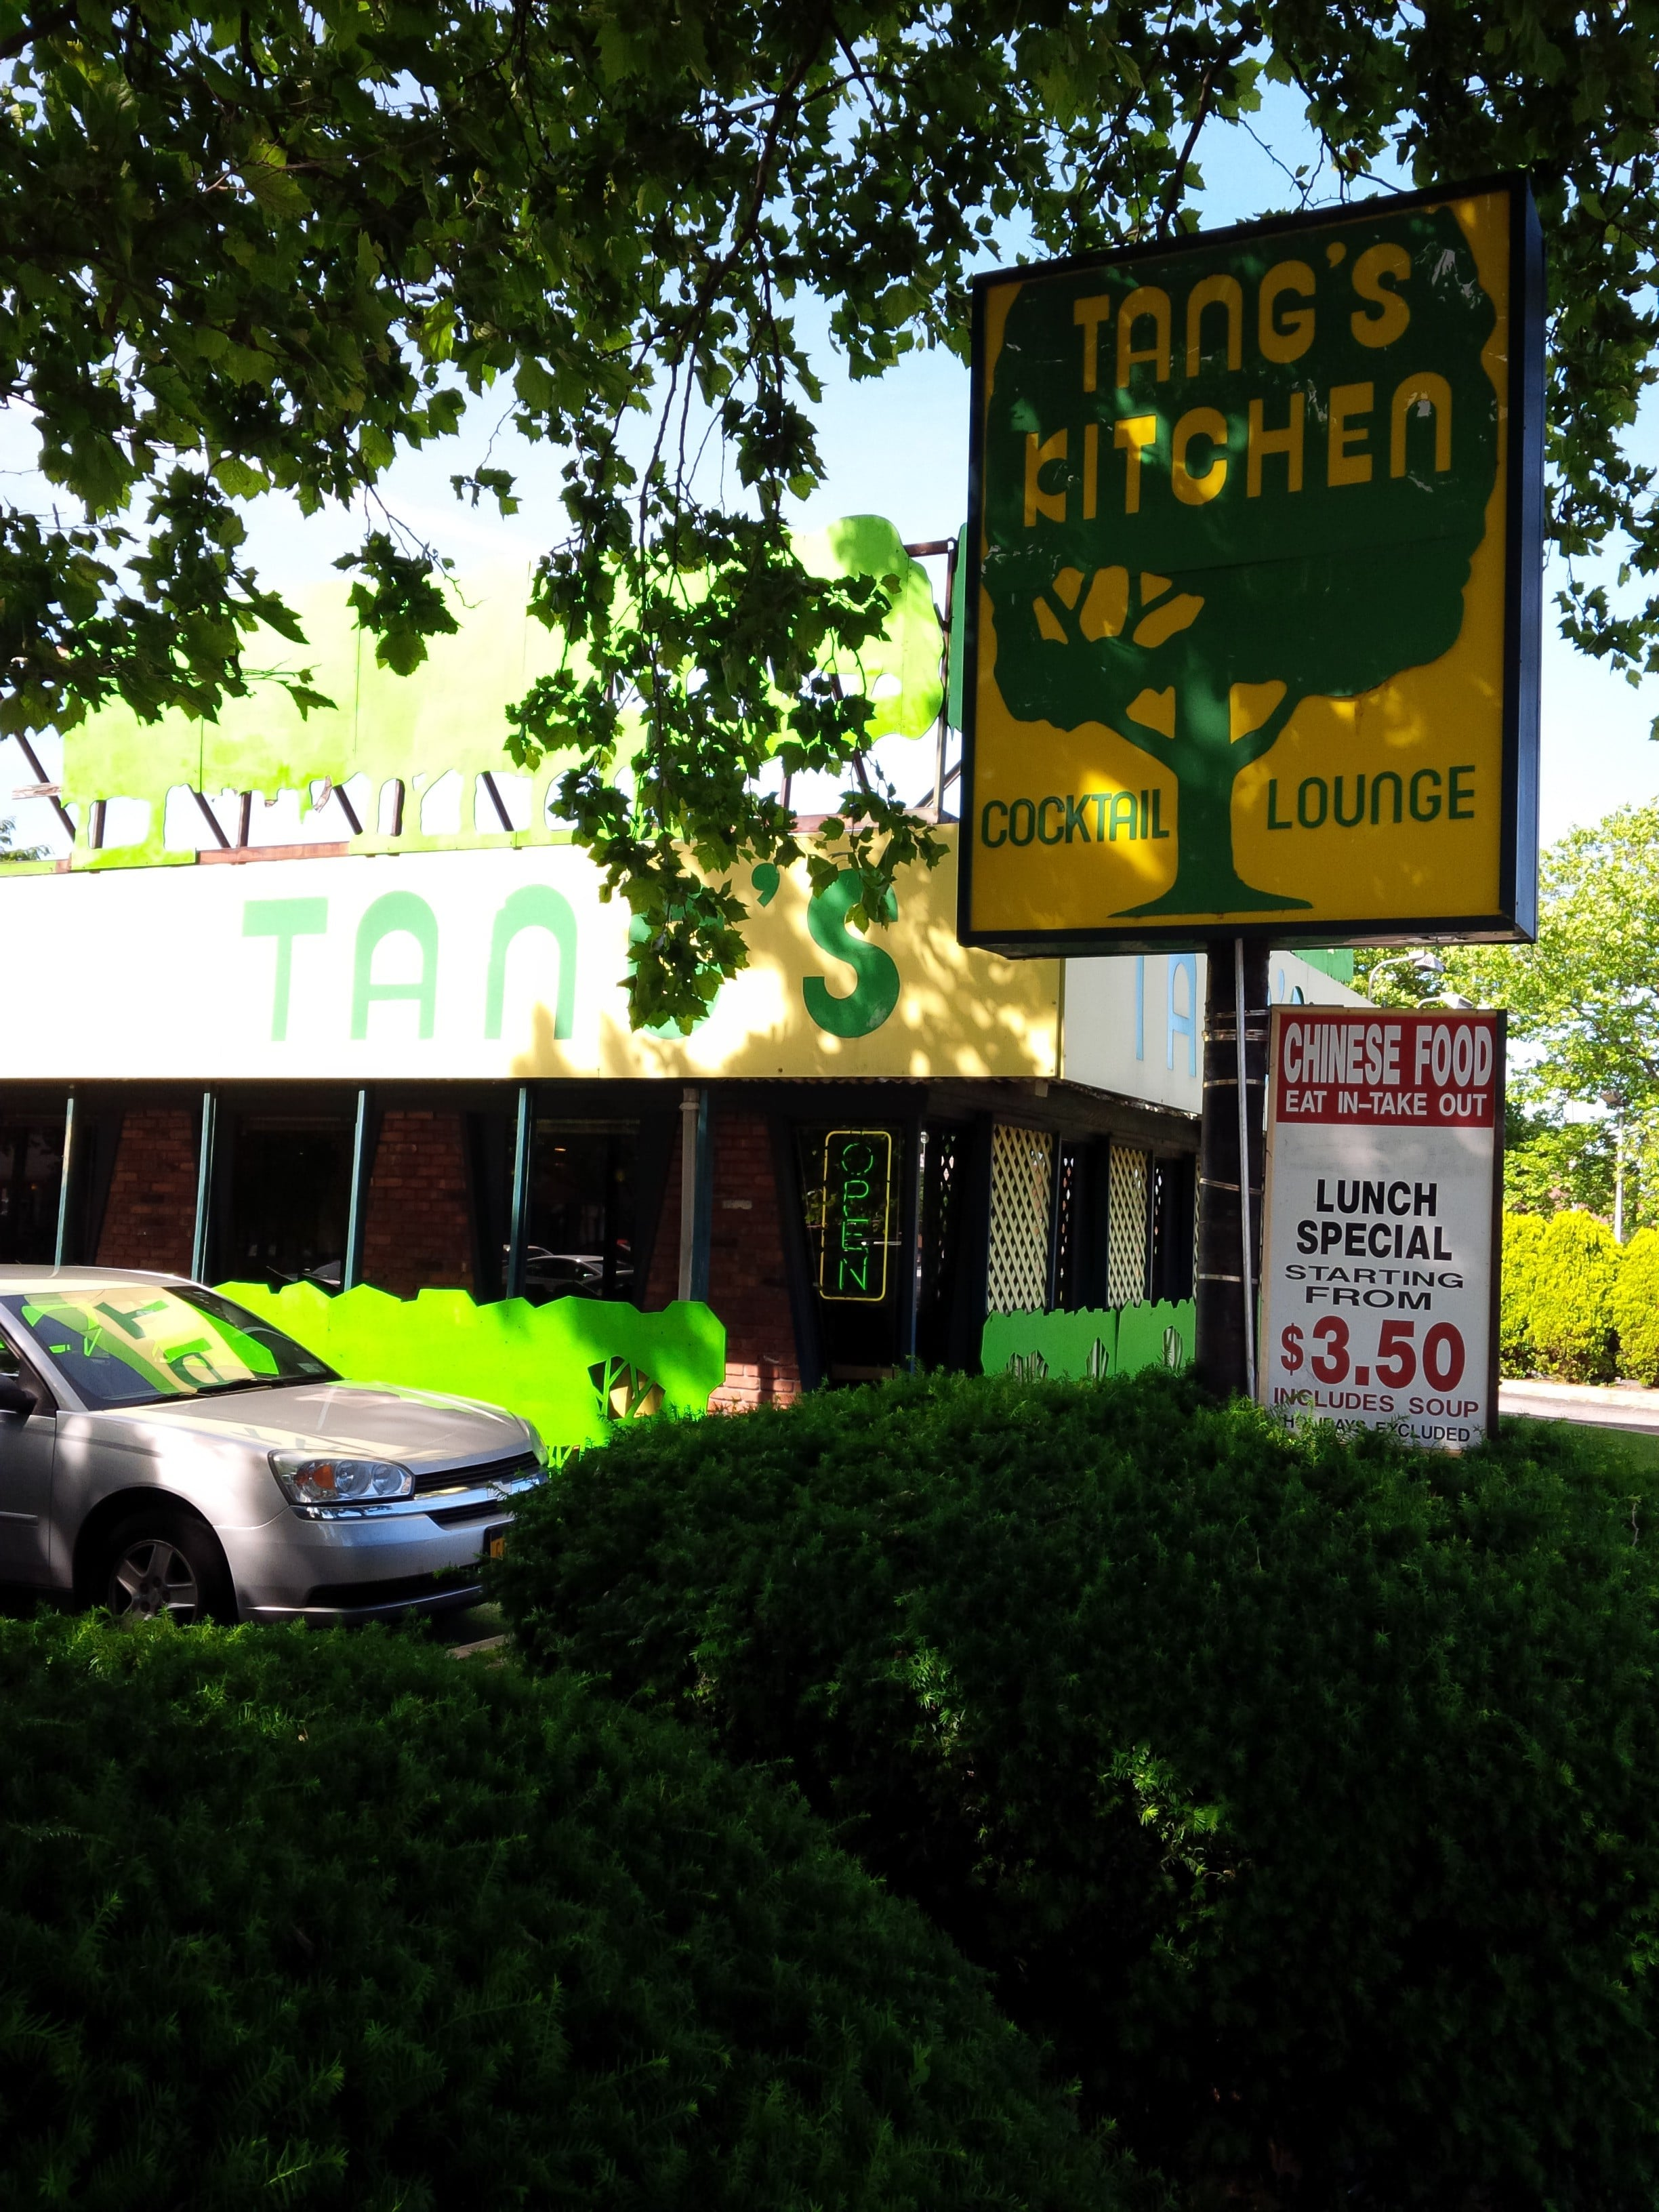 [Soloview]  Review of Tang's Kitchen, Lindenhurst, NY